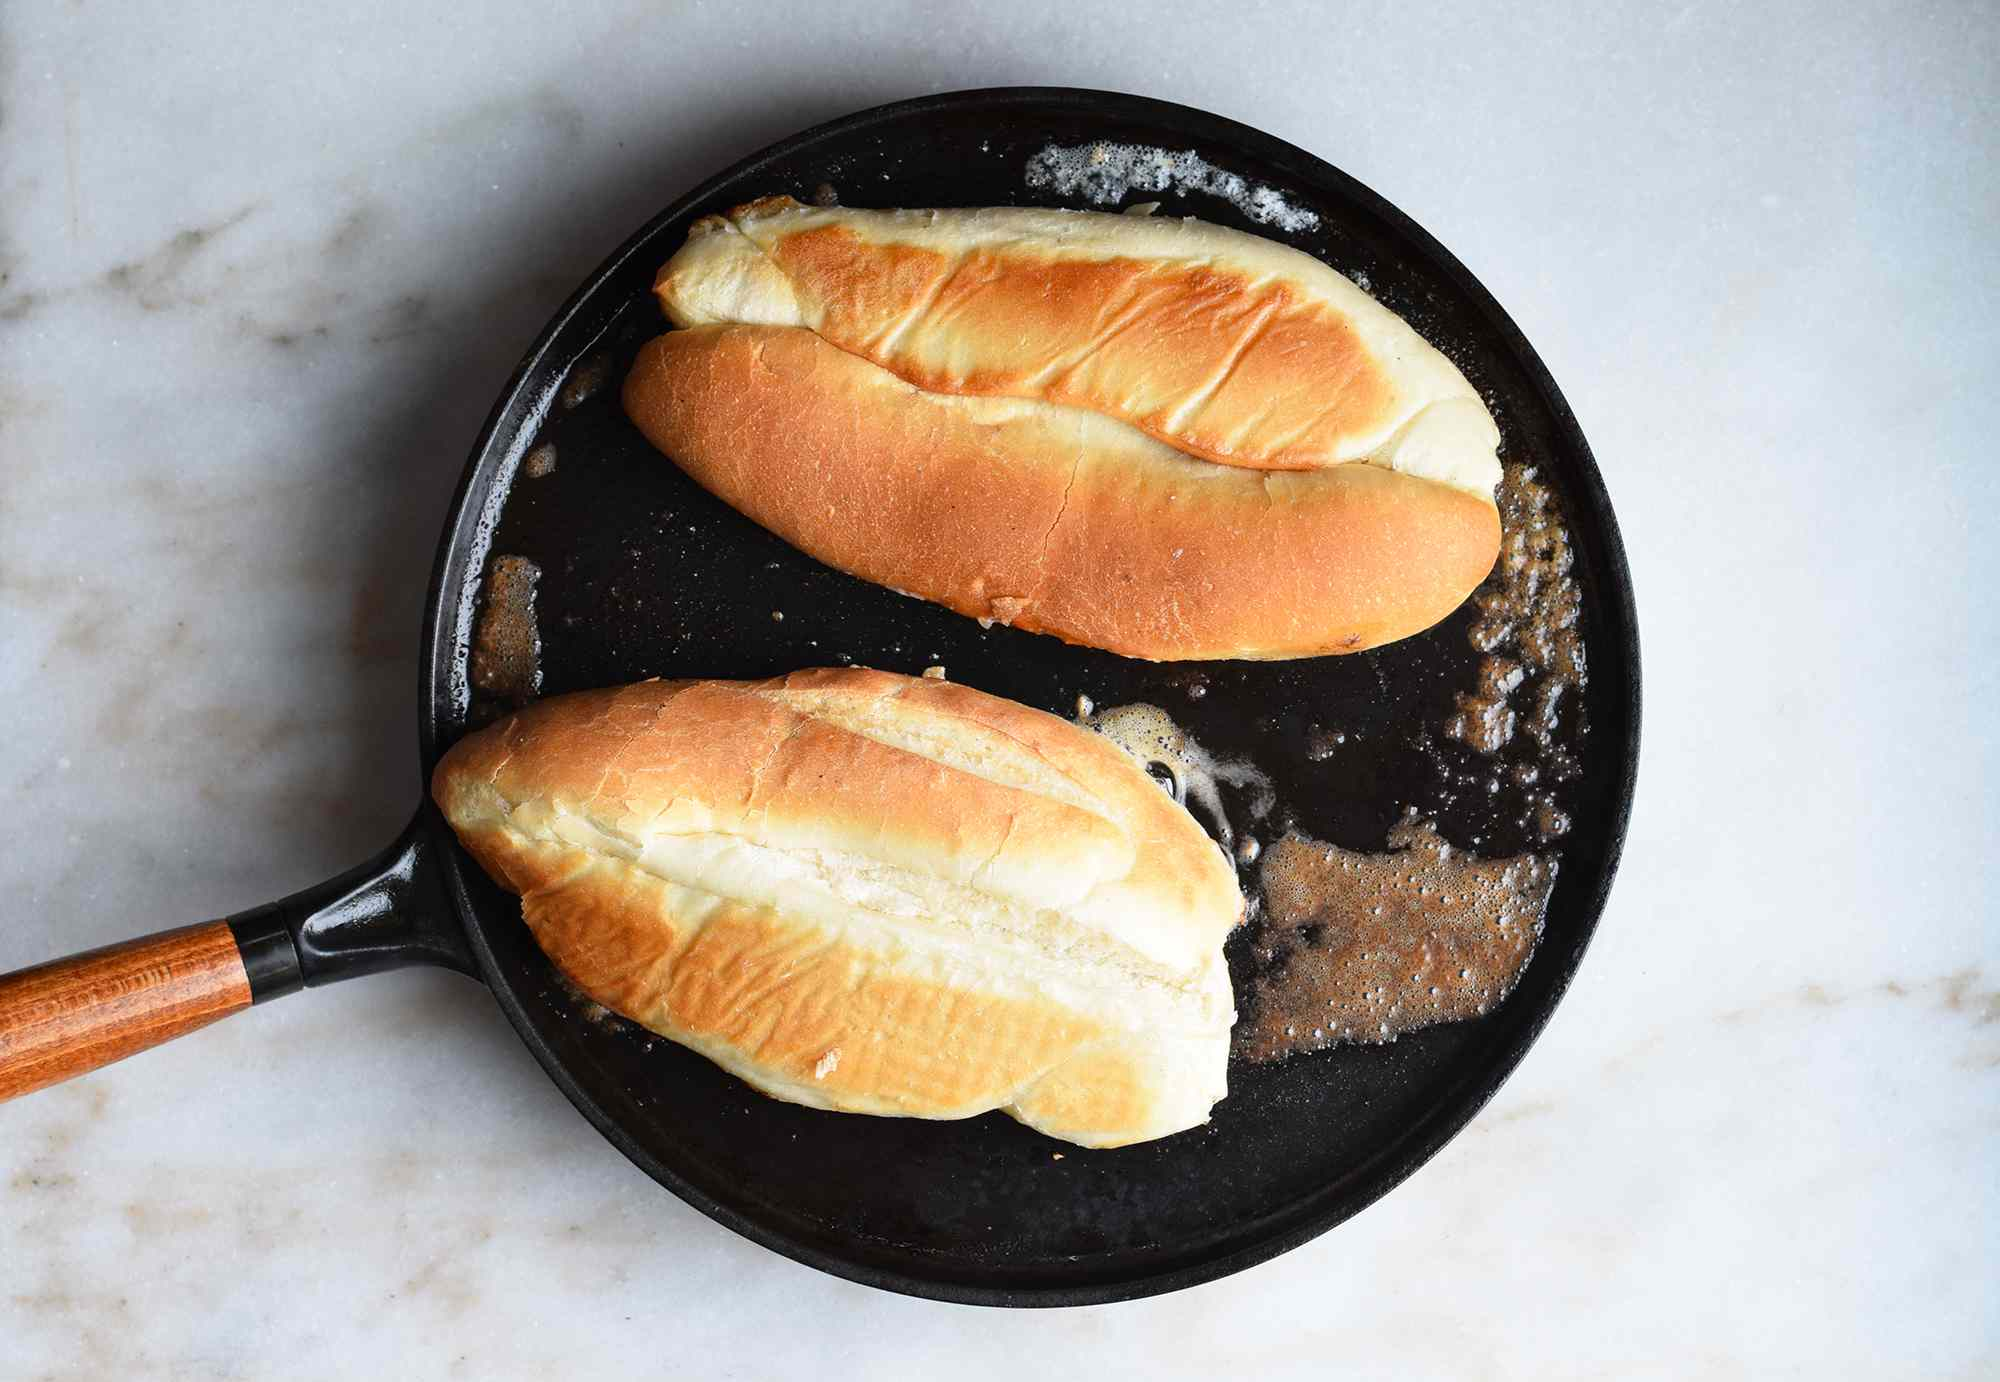 hoagie rolls grilled in a buttered pan